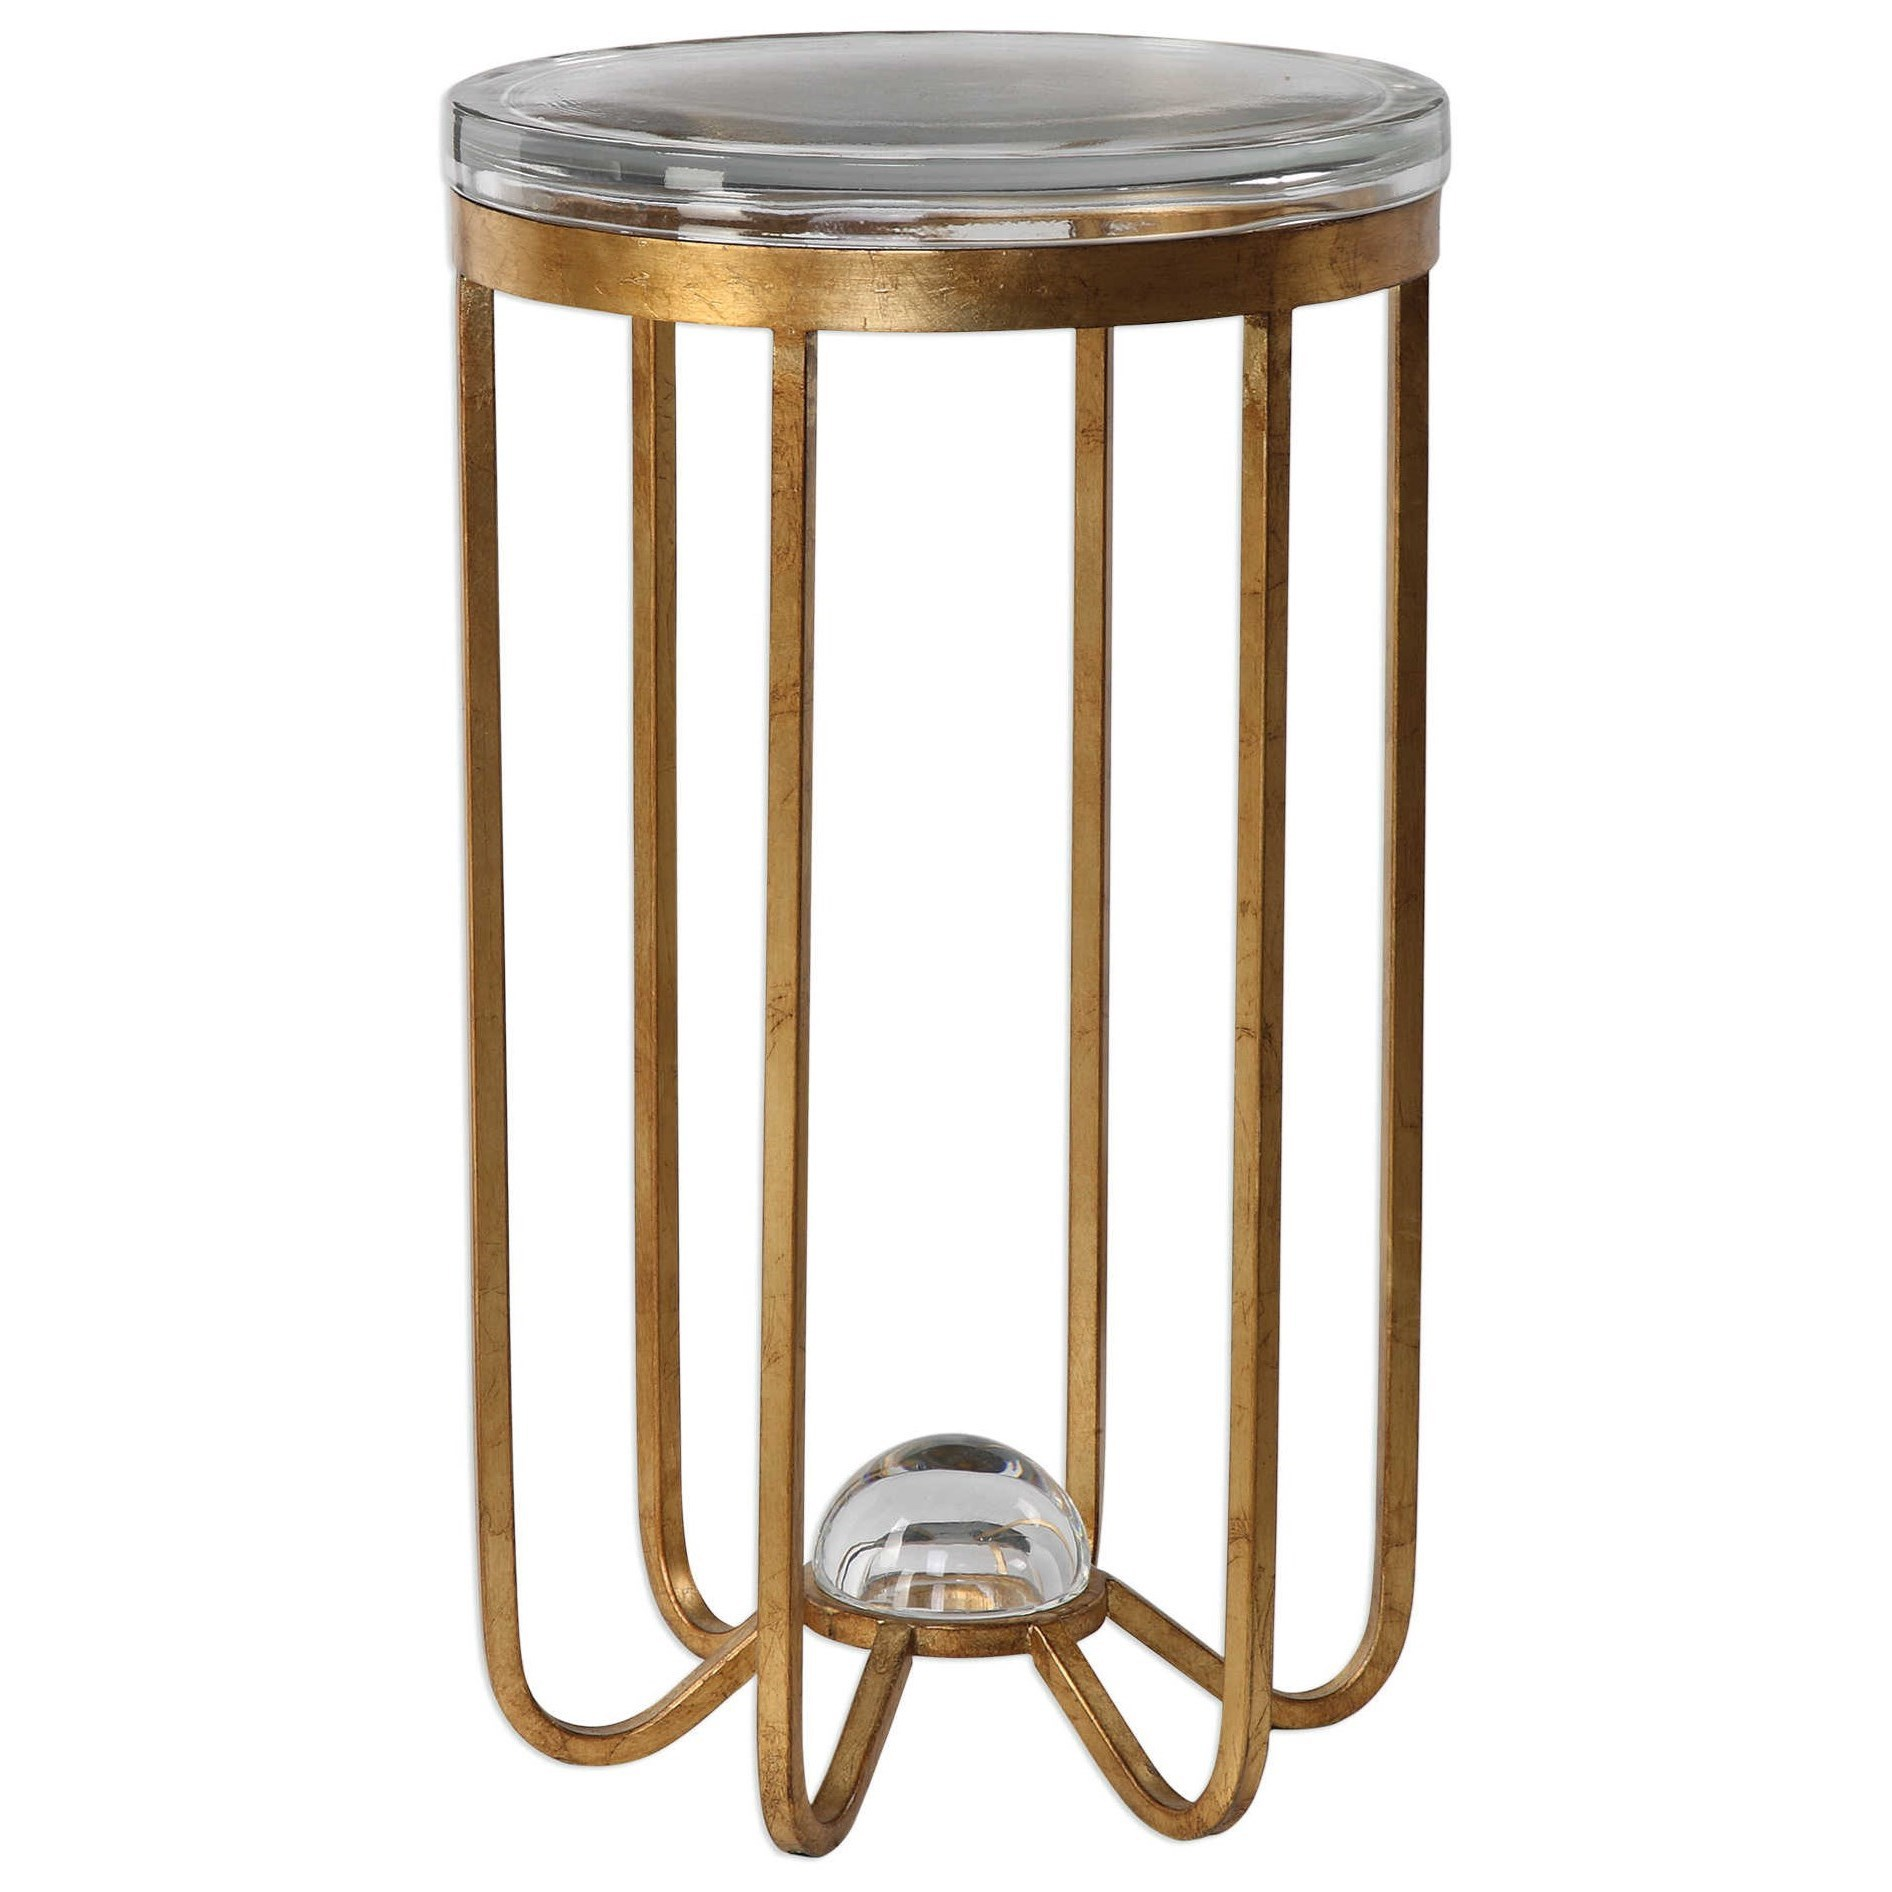 uttermost accent furniture allura gold table tables leather trunk coffee light colored wood end antique blue pastel narrow mirrored console cherry couch round aluminum stacked